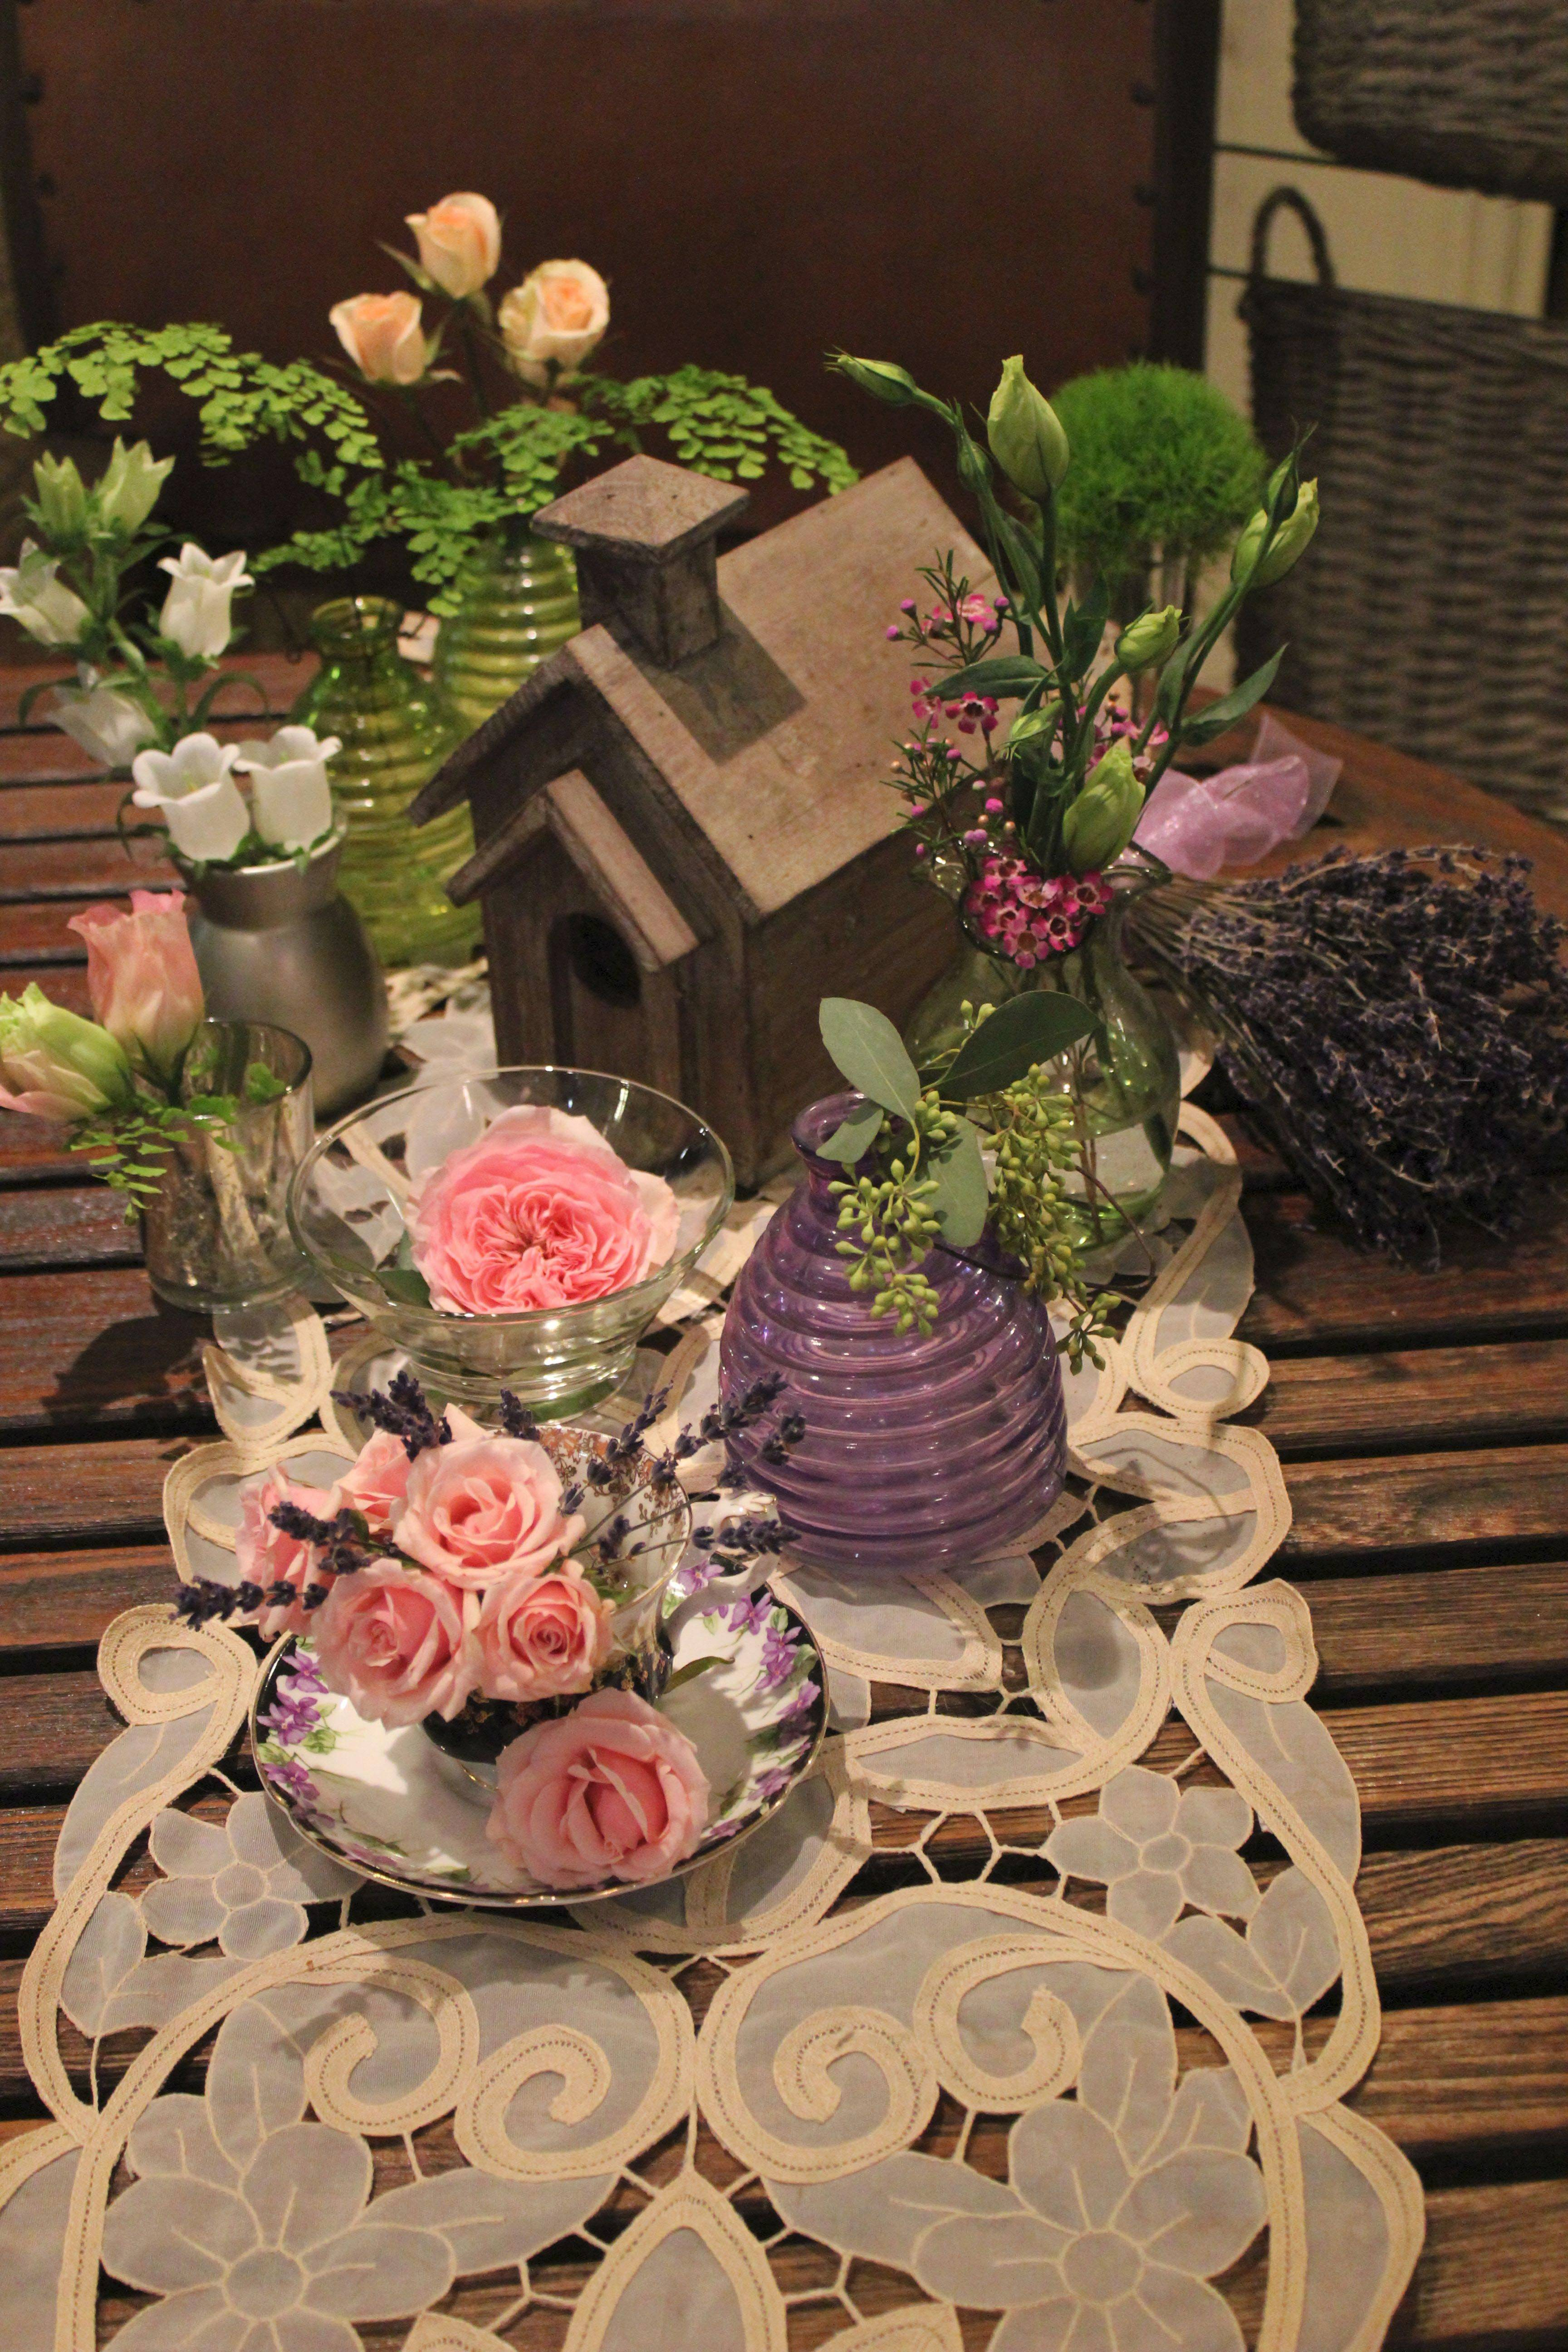 COLLECTIBLES AS CONTAINERS: Little antique bottles from yard sales, old milk bottles and old pitchers will stand out in arrangements. Put several of these containers on a tray with a single flower in each -- perhaps a rose in one, a hydrangea in another -- creating a tablescape across your dining table.